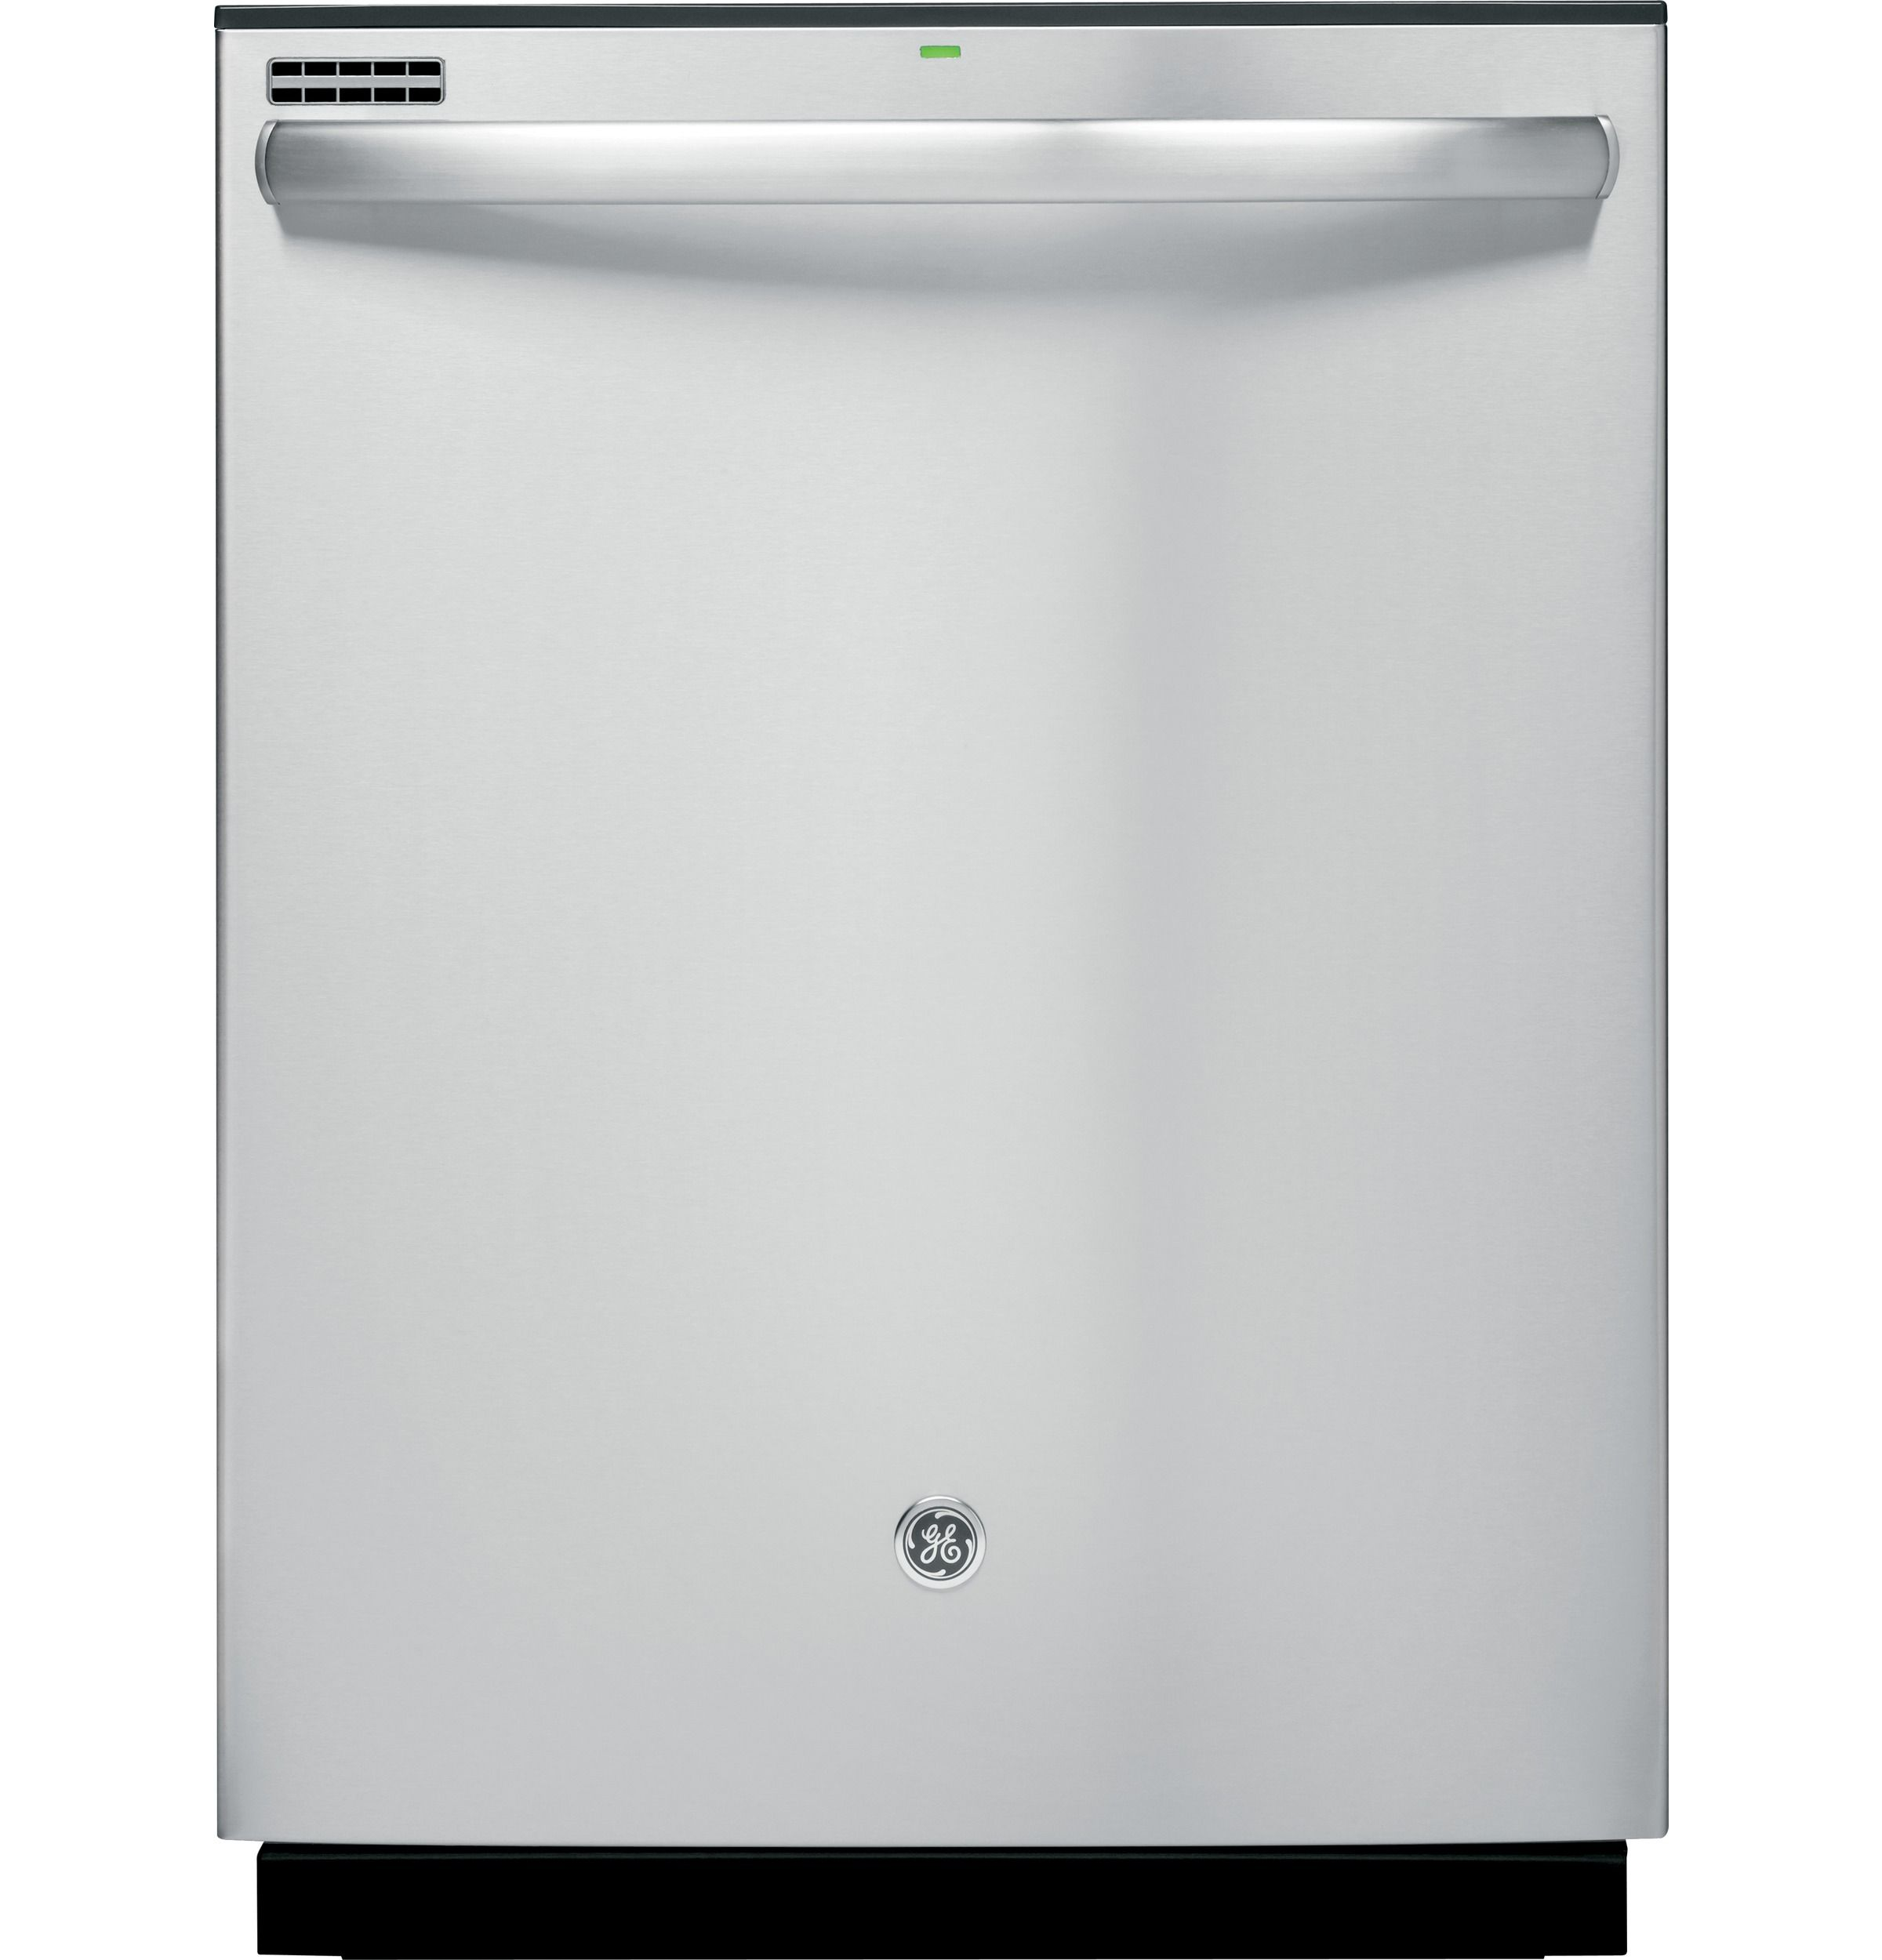 Ge Hybrid Stainless Steel Interior Dishwasher With Hidden Controls Gdt550hsdss Top Control Dishwasher Integrated Dishwasher Built In Dishwasher